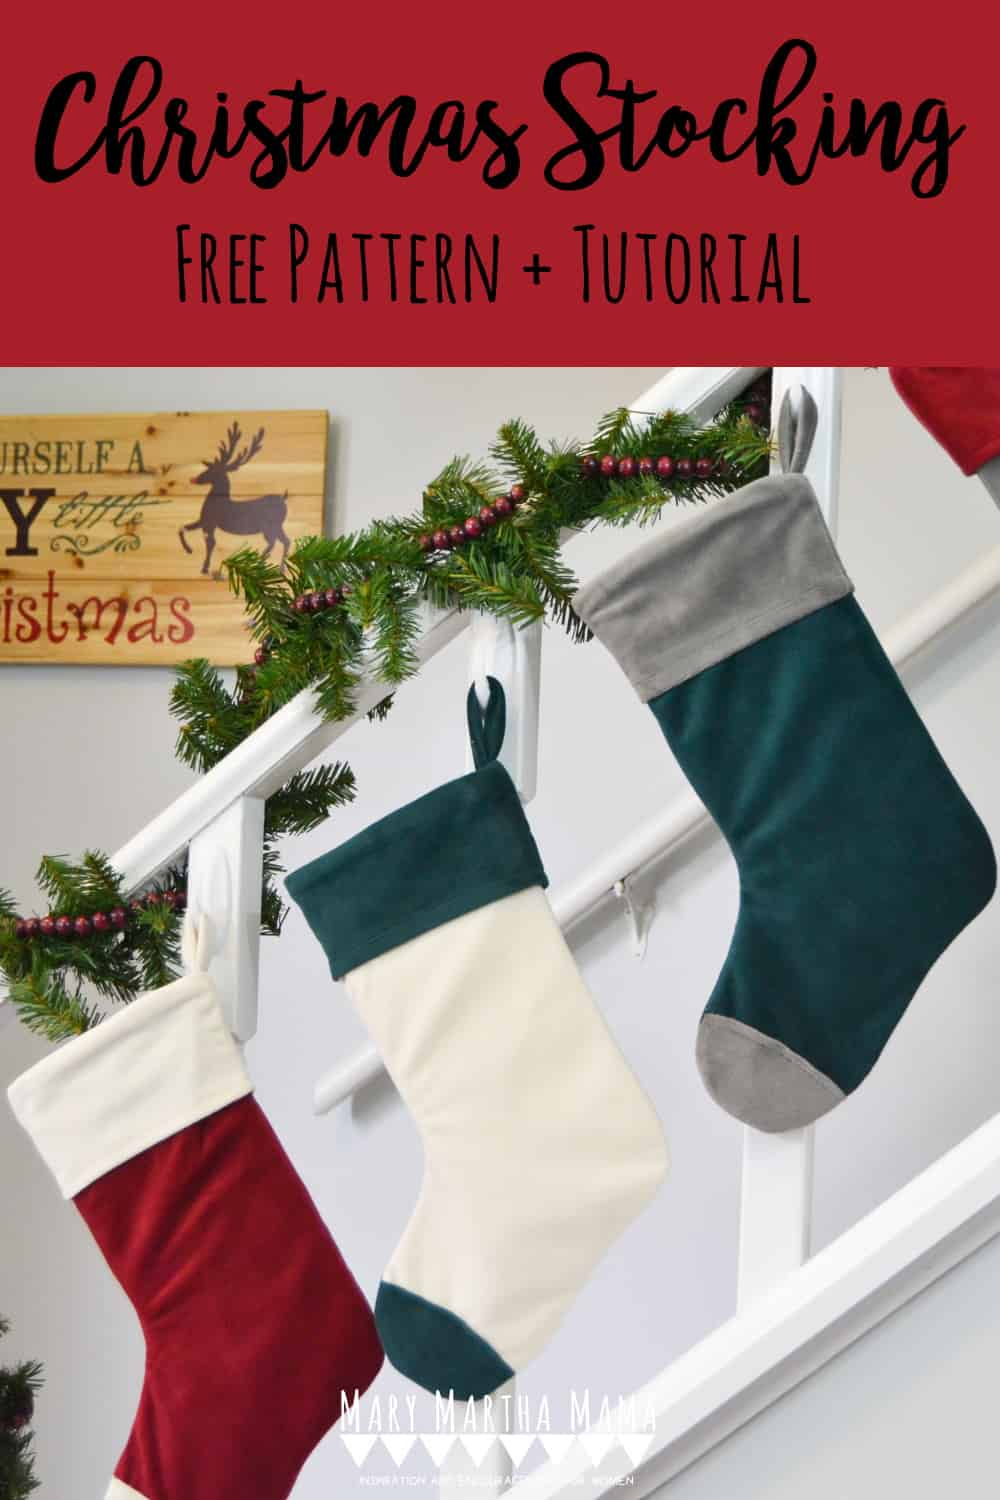 Use this cuffed Christmas stocking pattern and tutorial to make your own Christmas stockings.  Choose the colors and fabric for a custom look all your own.